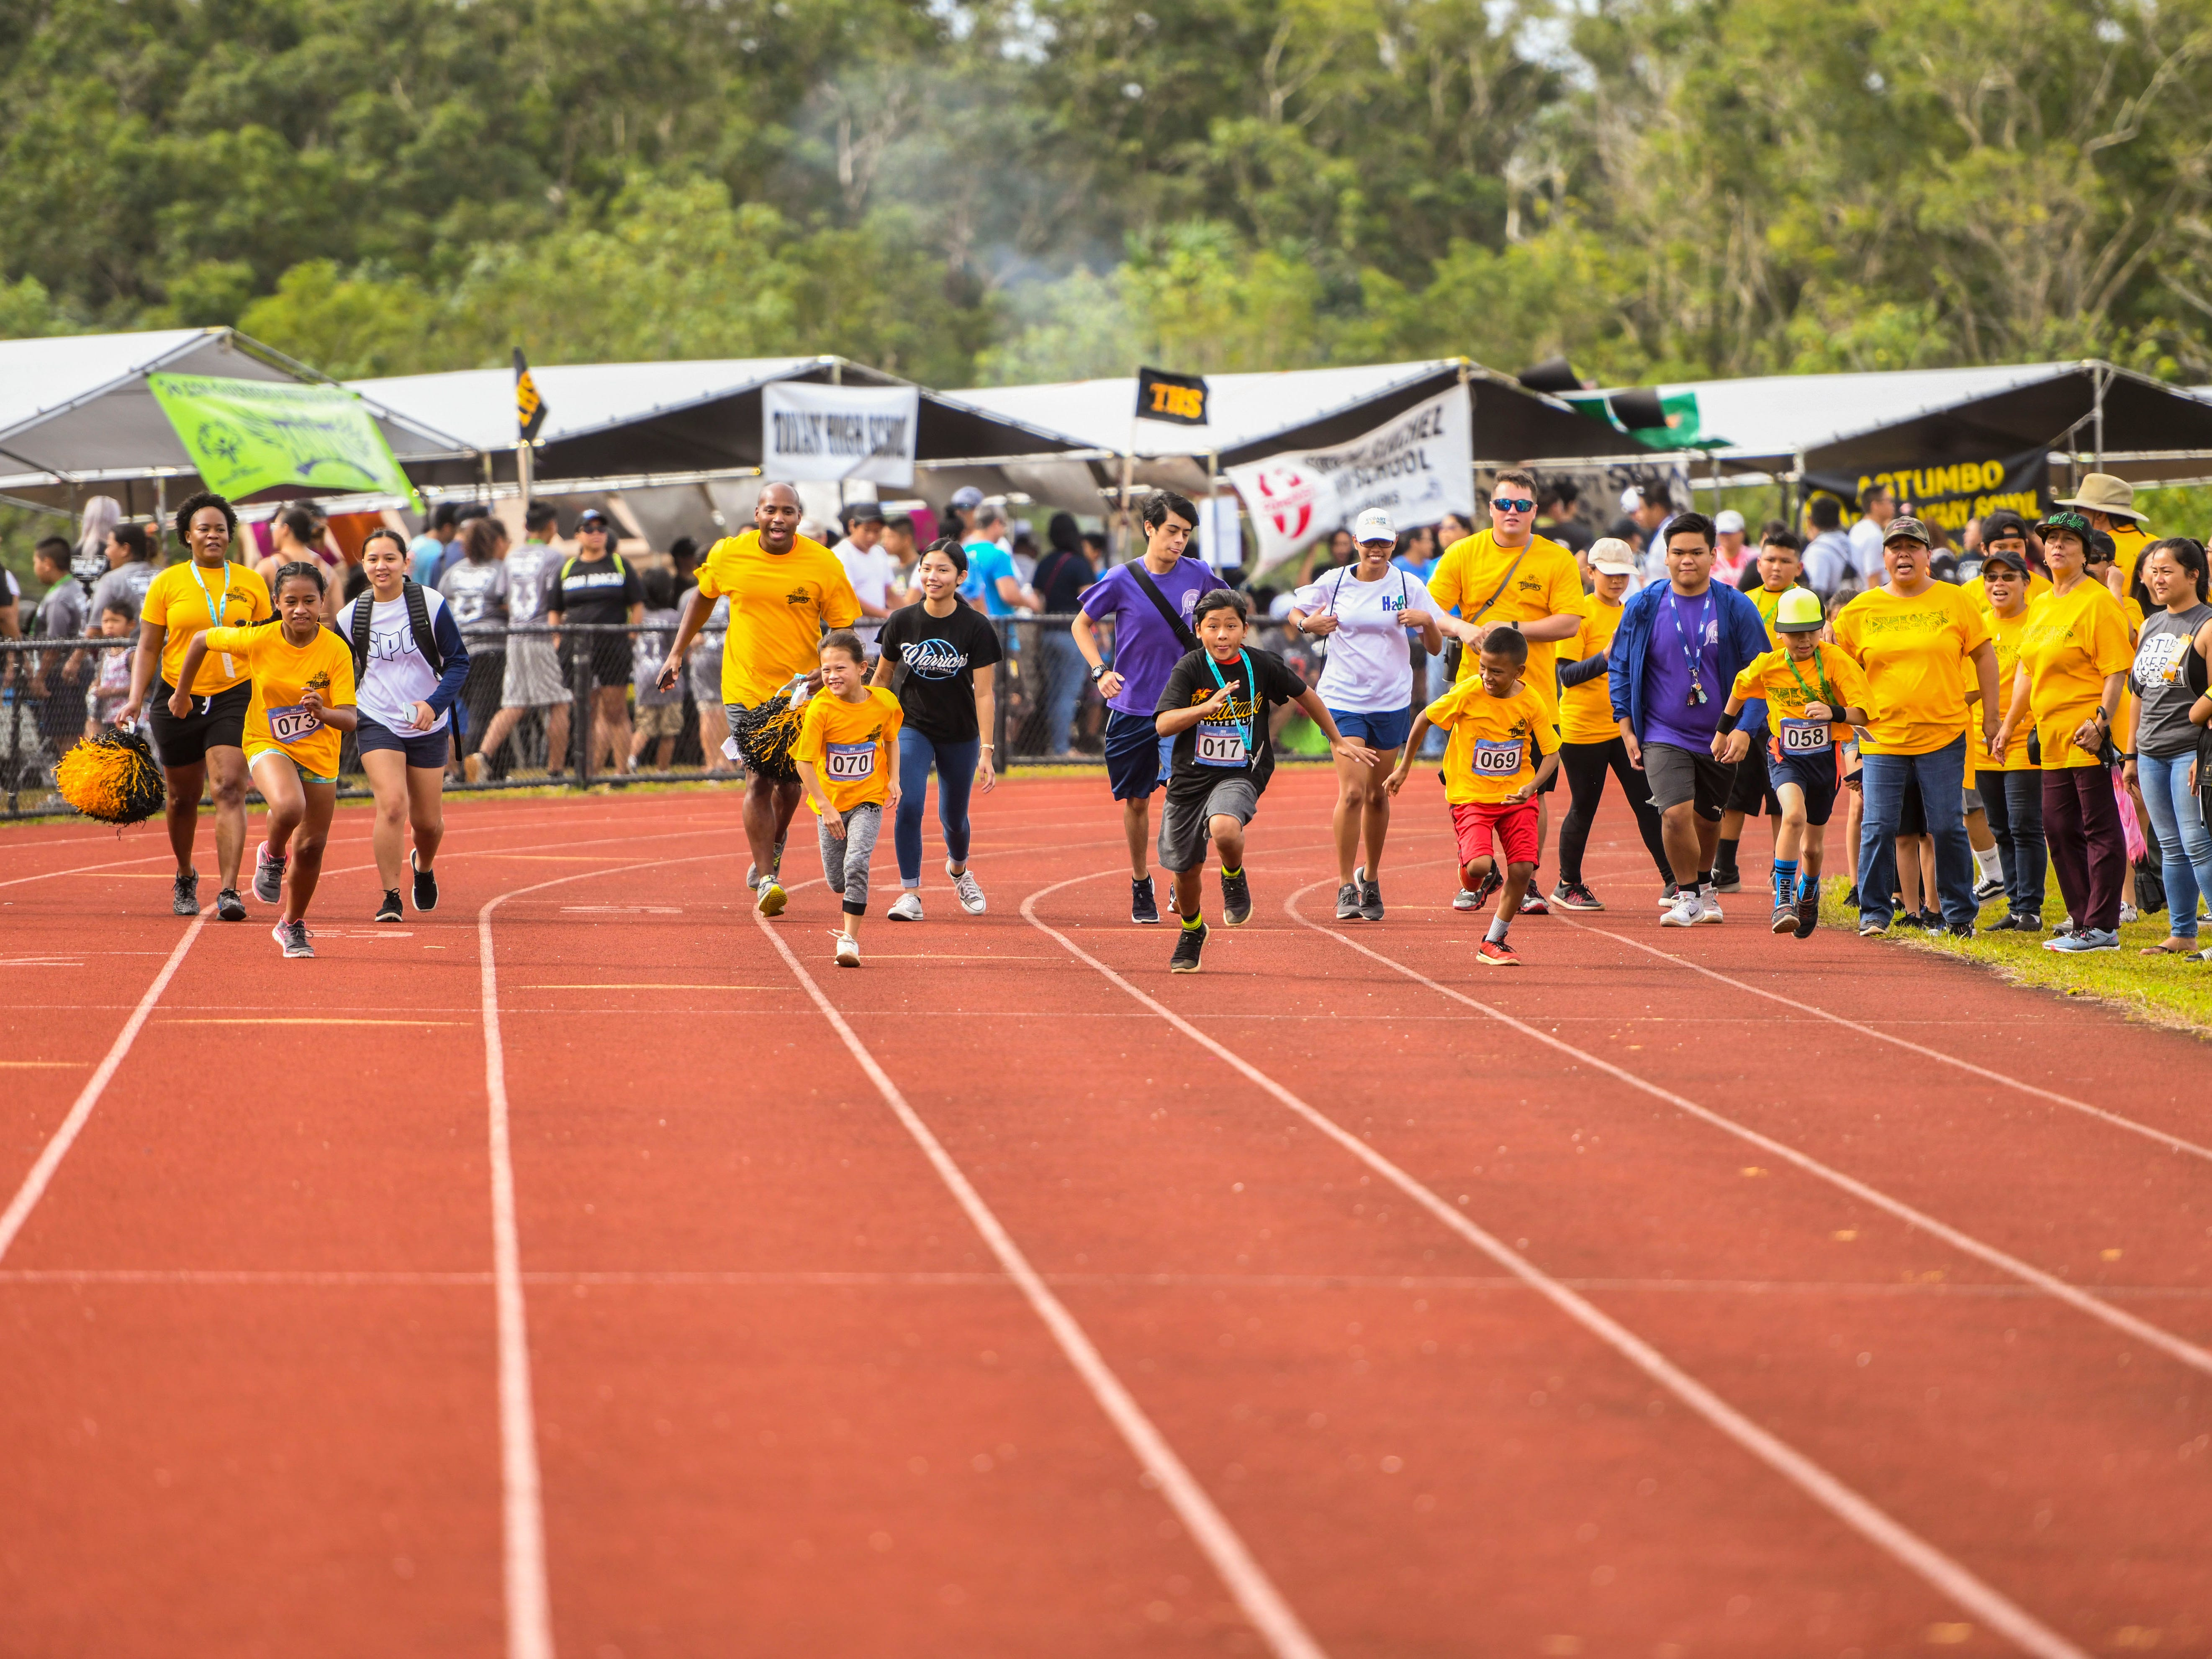 Special Olympians kick off from the starting line during a 50-meter race at the 43rd Special Olympics Guam Track & Field competition at Okkodo High School in Dededo on Saturday, March 16, 2019.